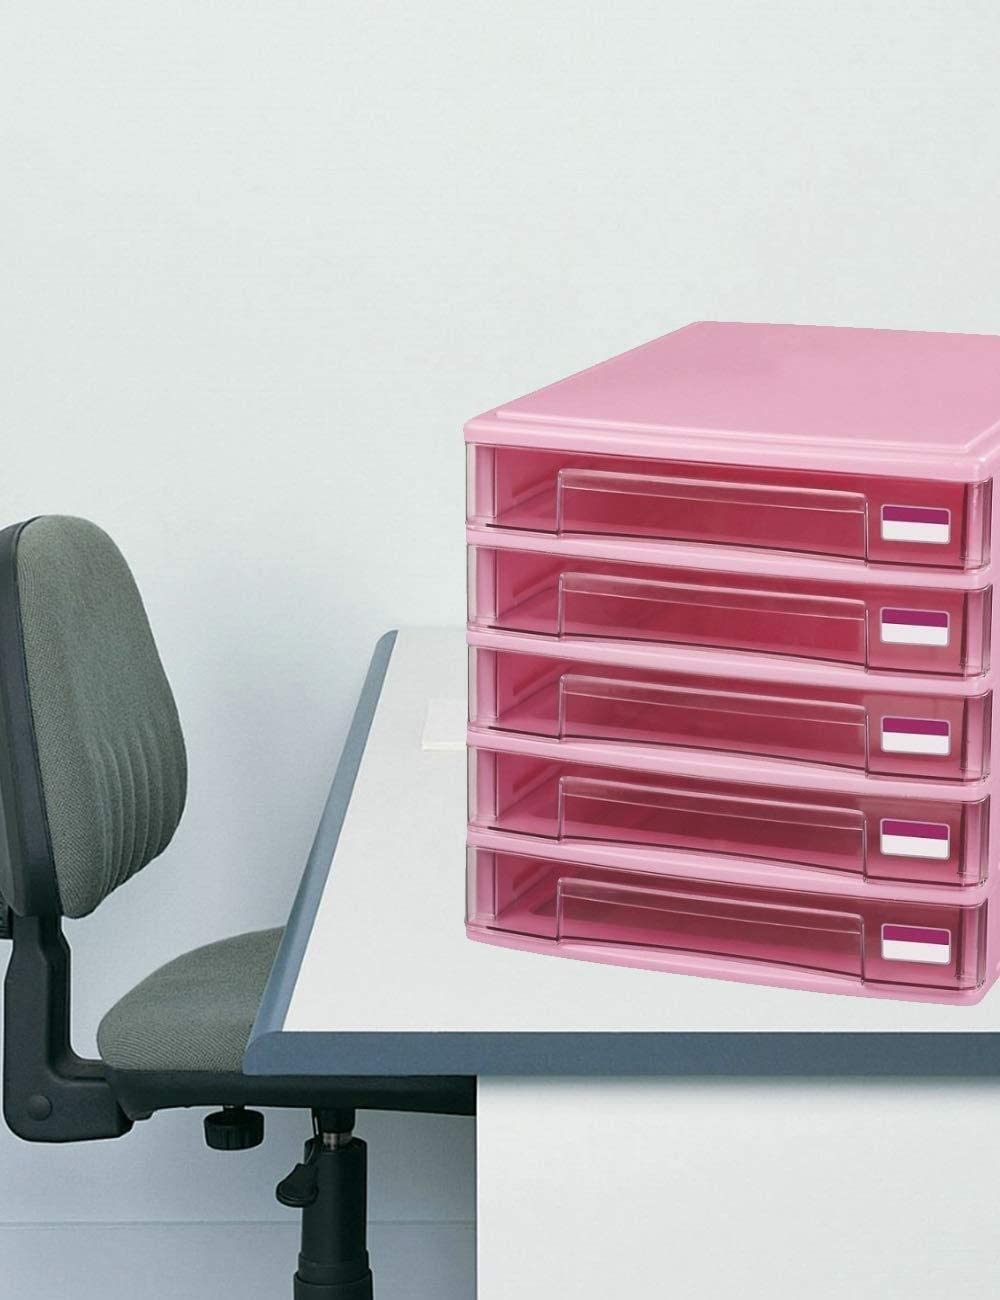 Pink Office File Manager Locker Desktop Manager Home Office Furniture Office Supplies Color : A File cabinet File Cabinets 5 Drawers Innovation Charming Design Gray